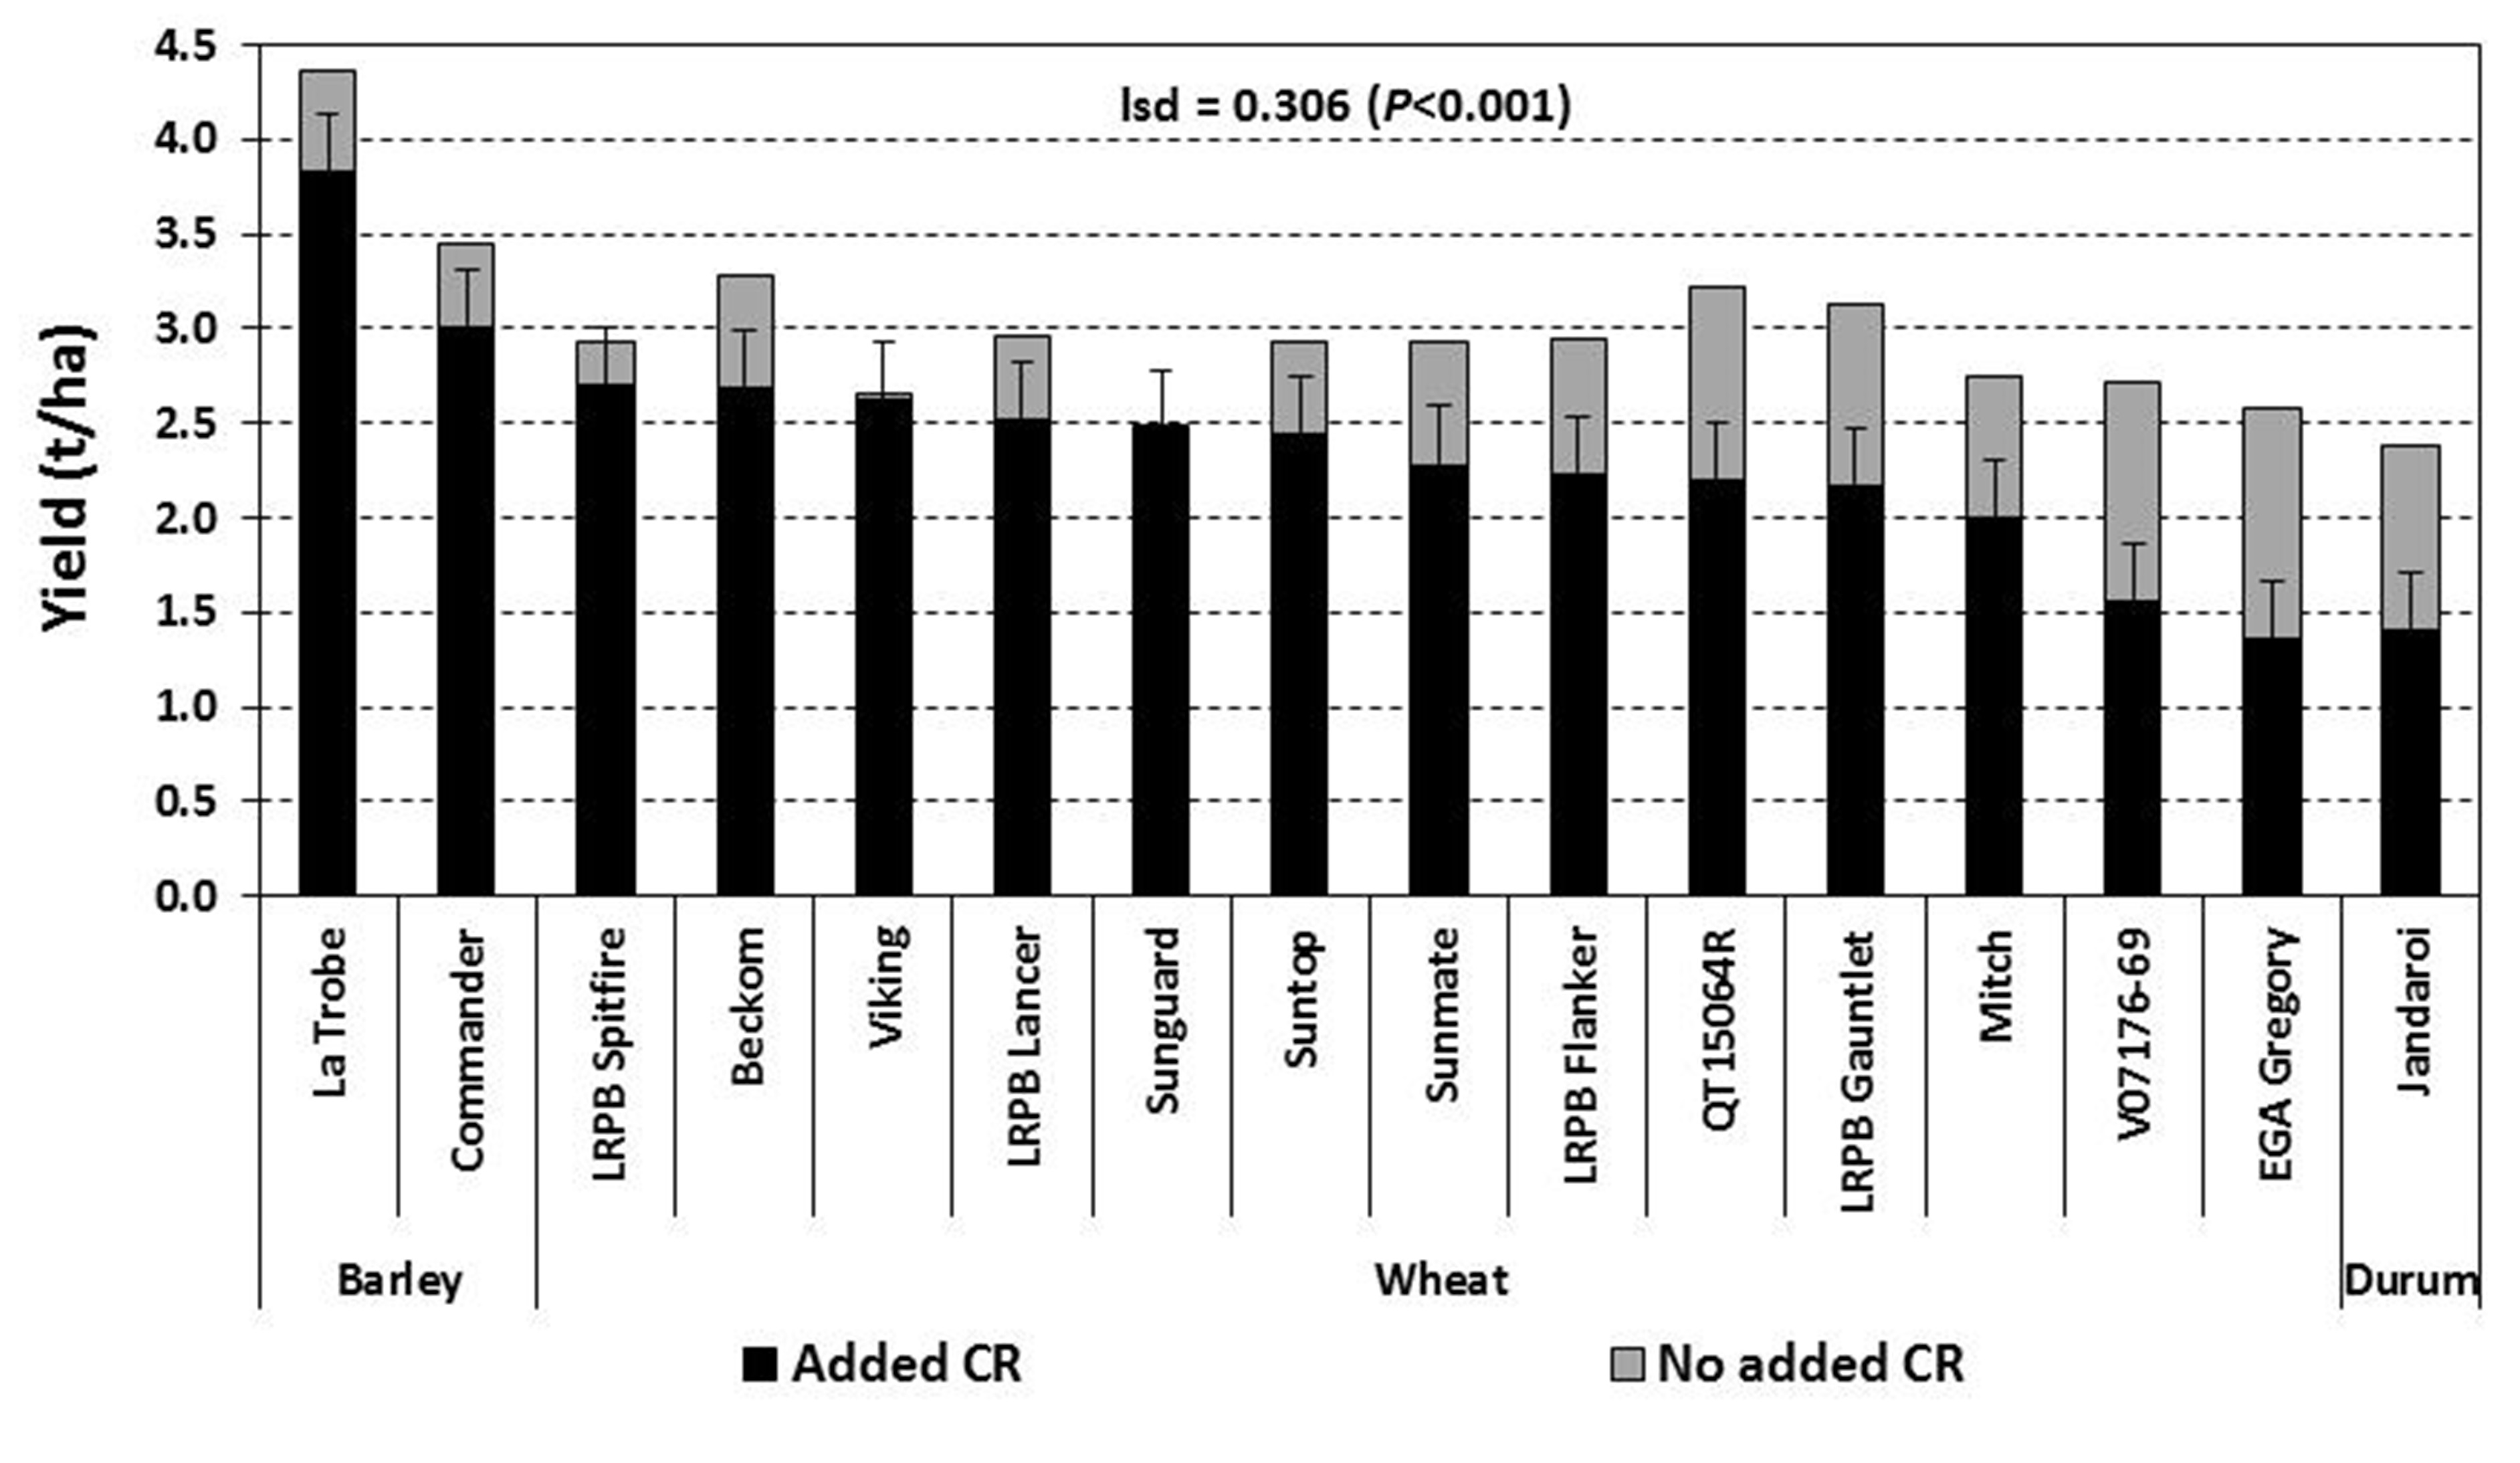 Figure 1. Impact of crown rot on the yield of two barley, 13 bread wheat and one durum entry - Nyngan 2015